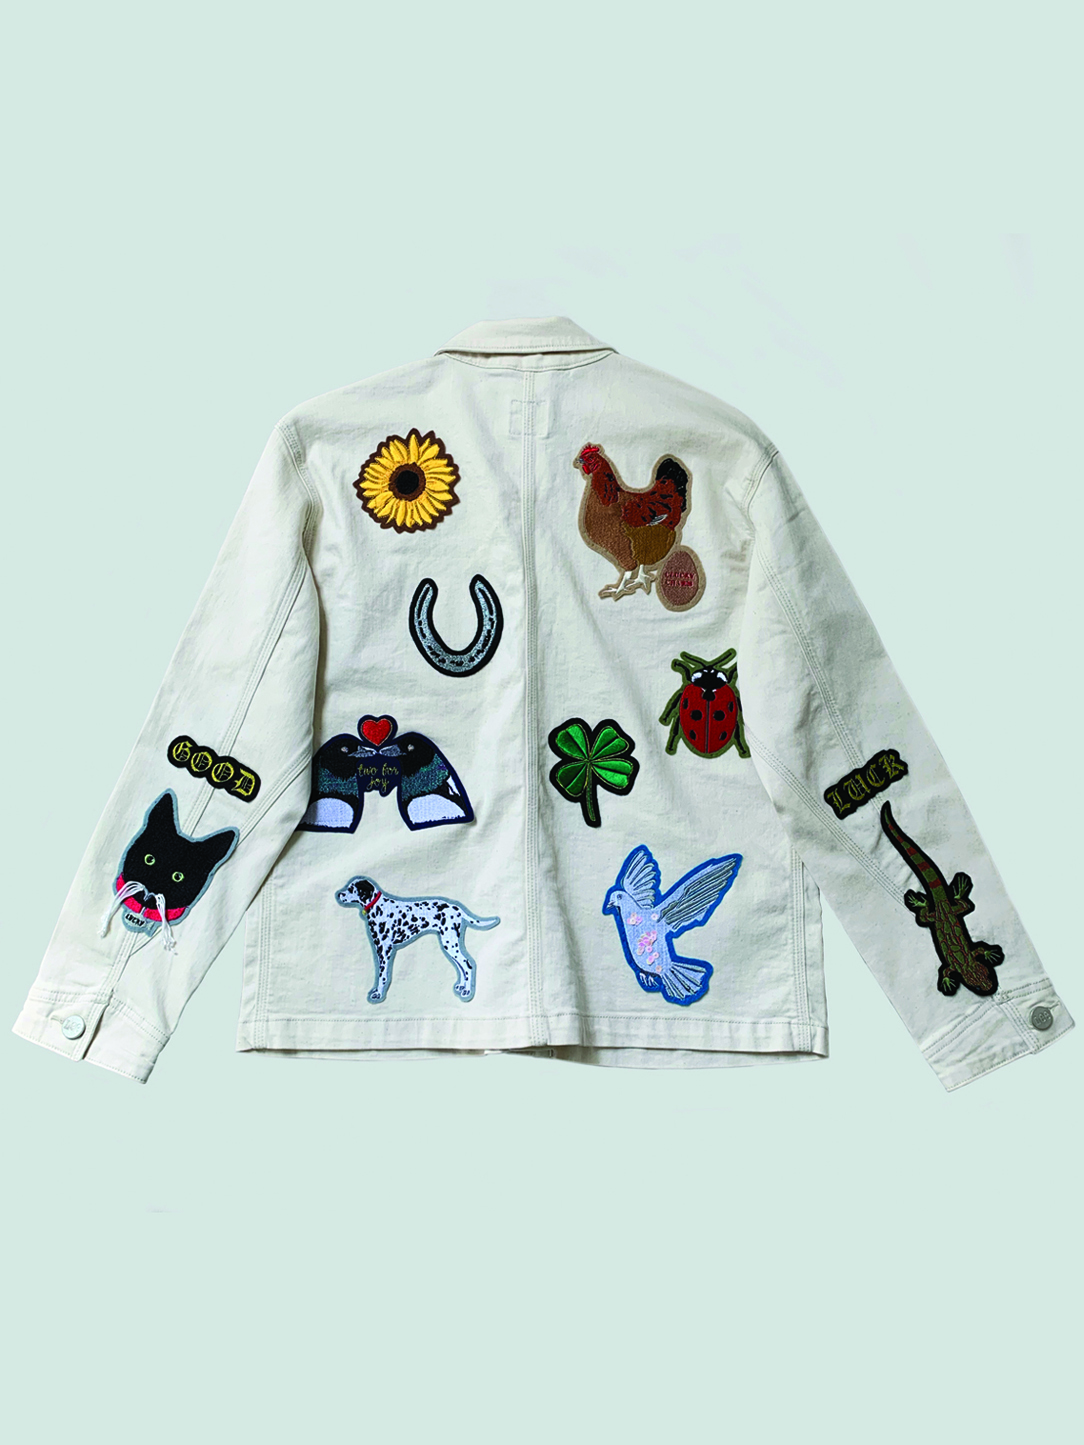 Jacket-Back-Product-Picture.jpg